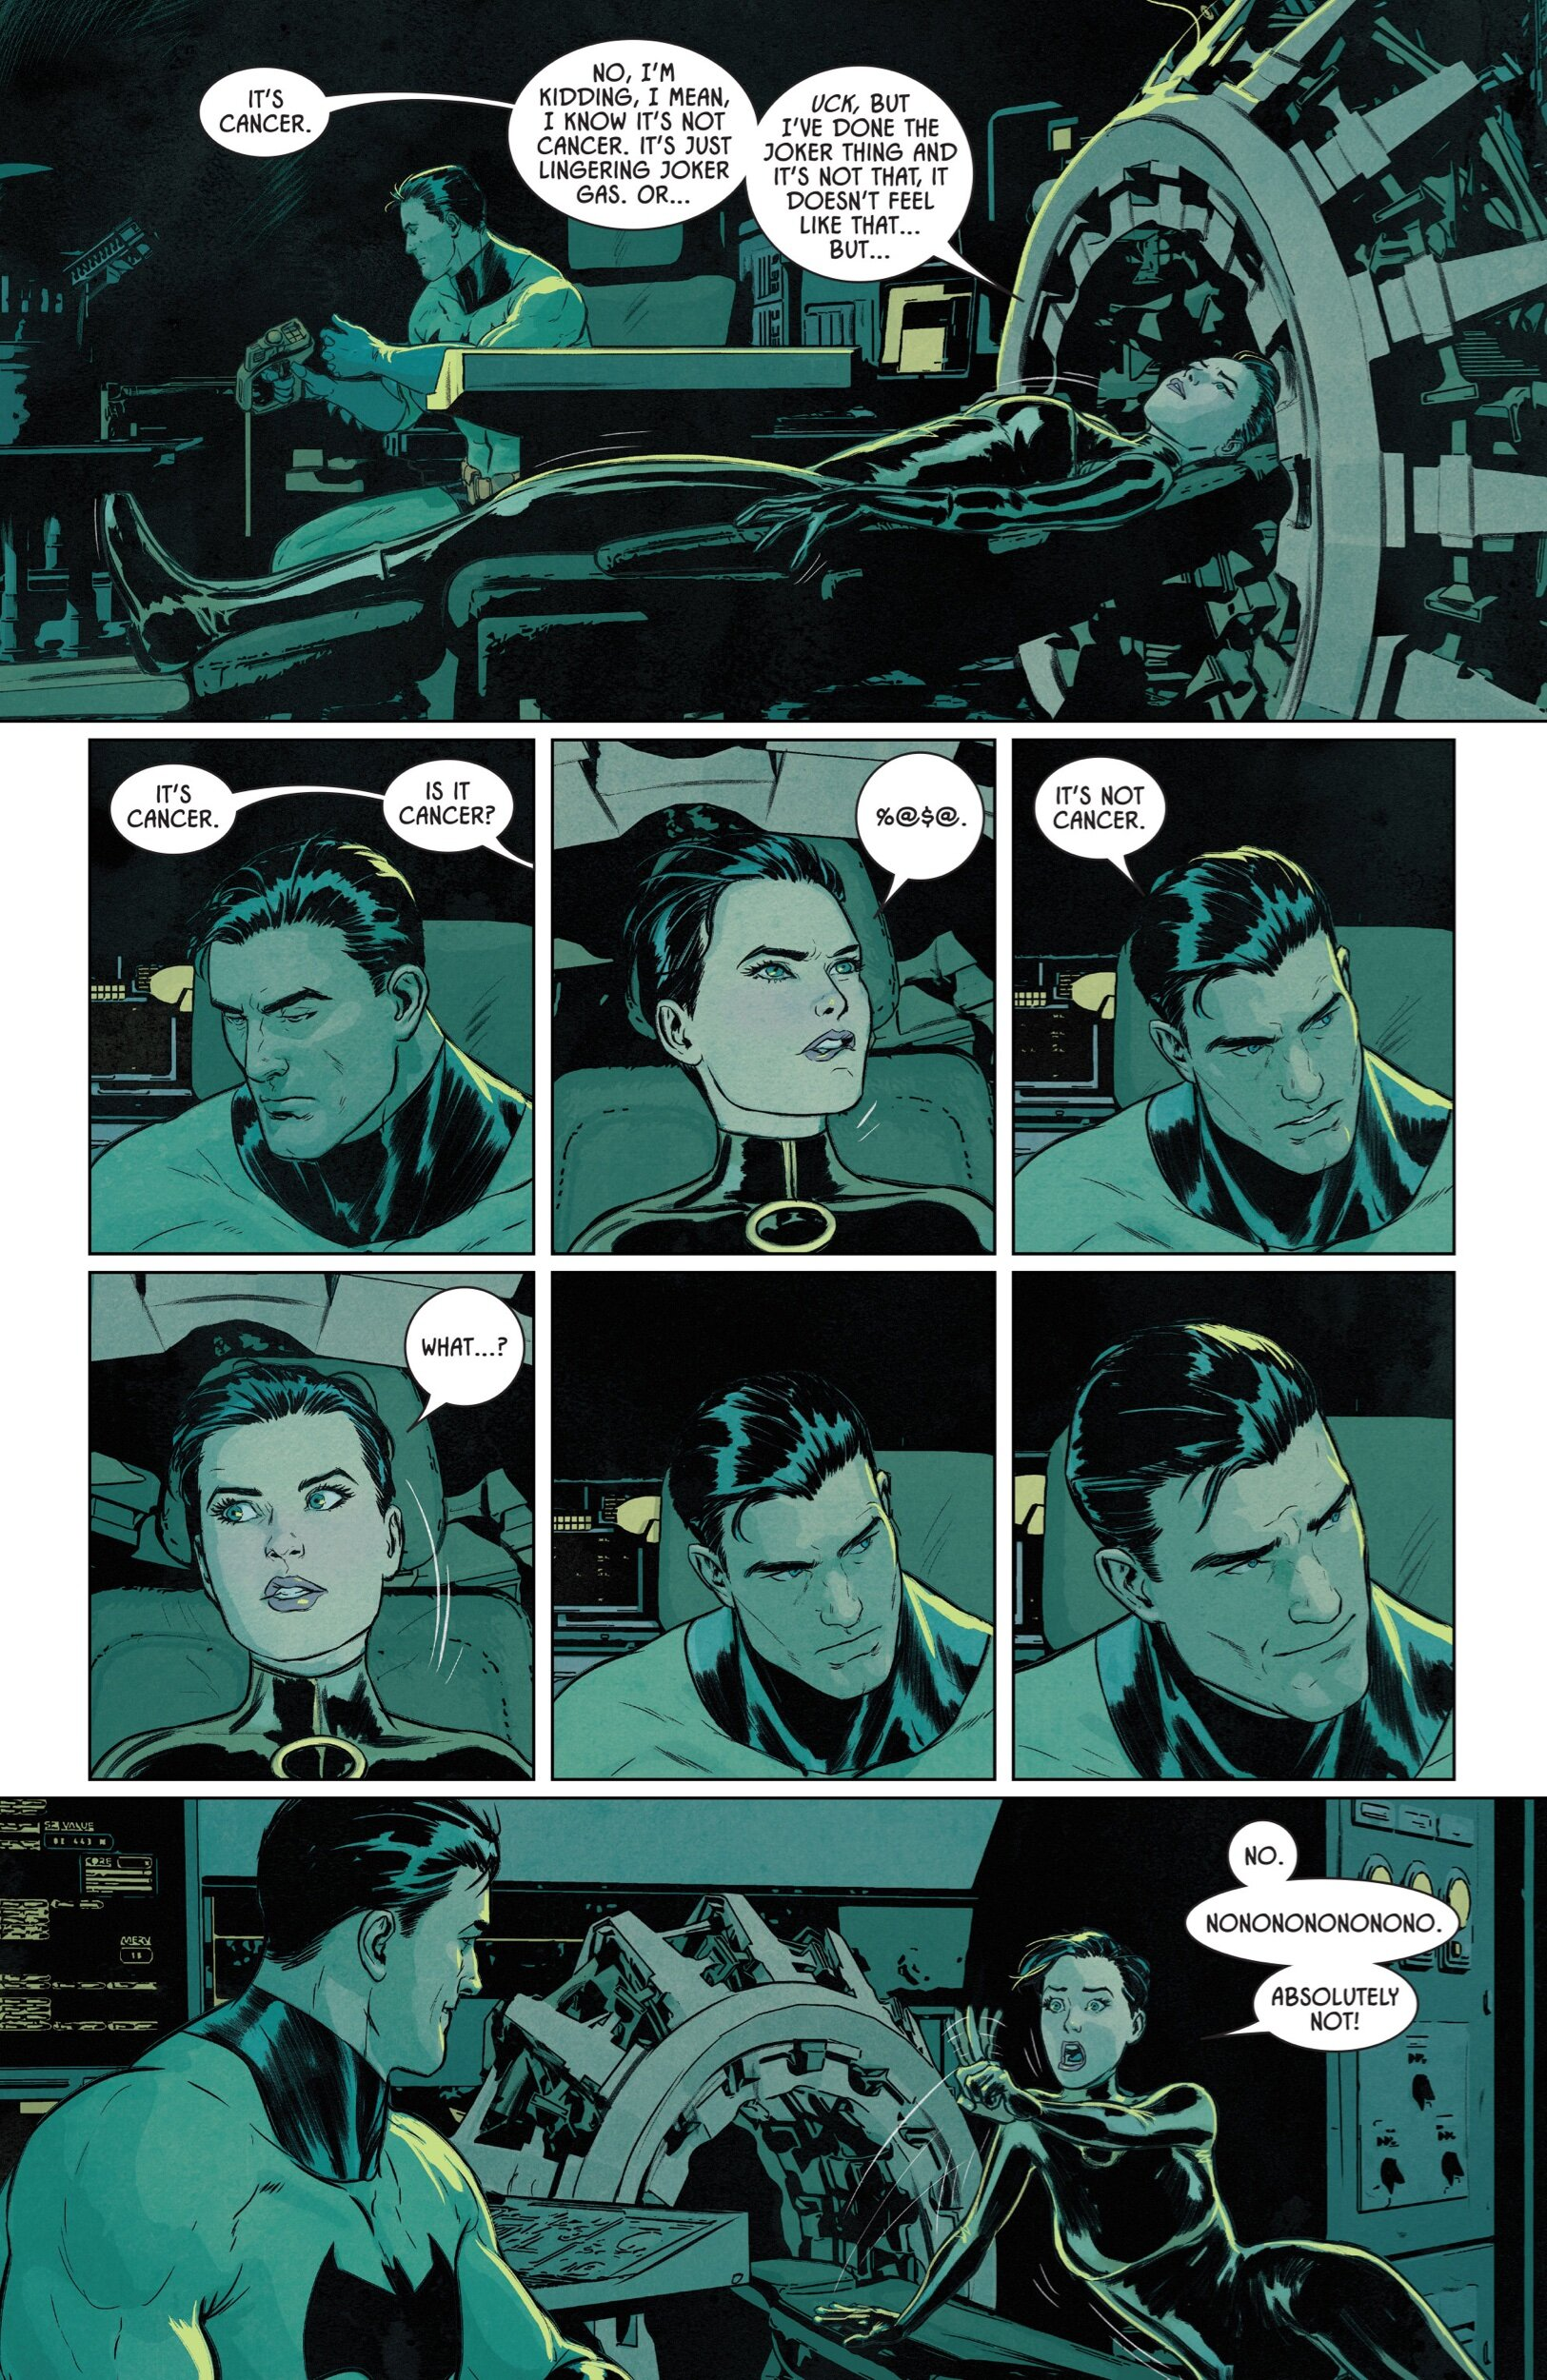 """Selina Kyle is feeling queasy in a first look at """"Catwoman 80th ..."""